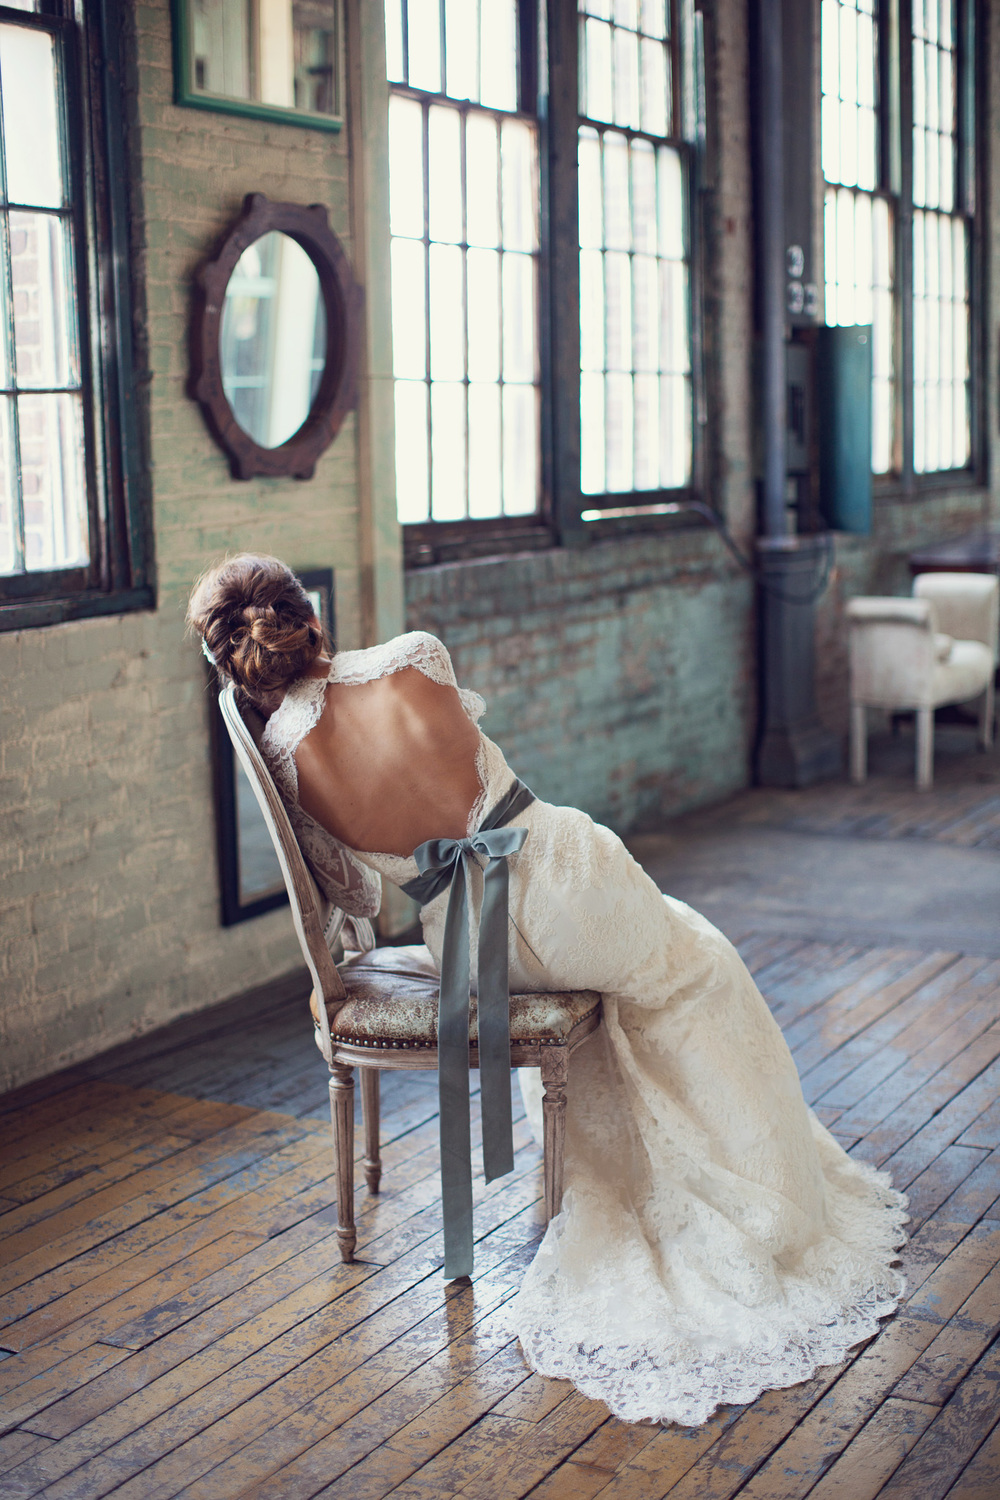 backless-wedding-dress-green-belt-metropolitan-building